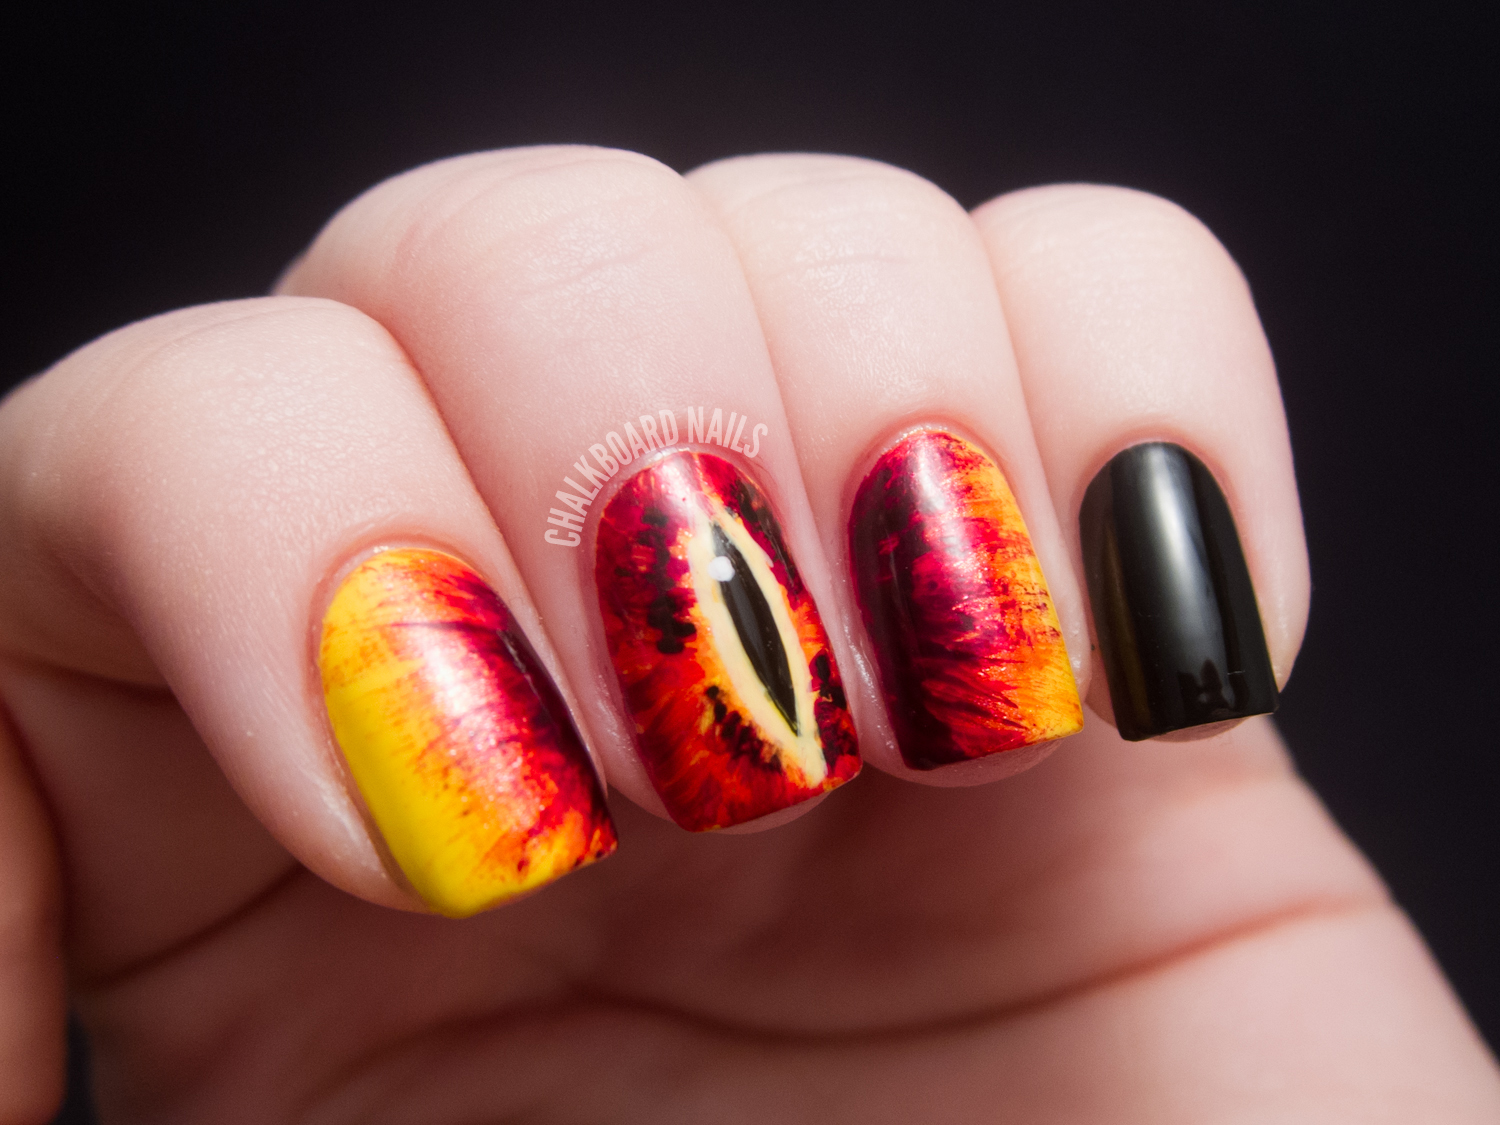 31DC2012: Day 23, Inspired by a Movie | Chalkboard Nails | Nail Art Blog